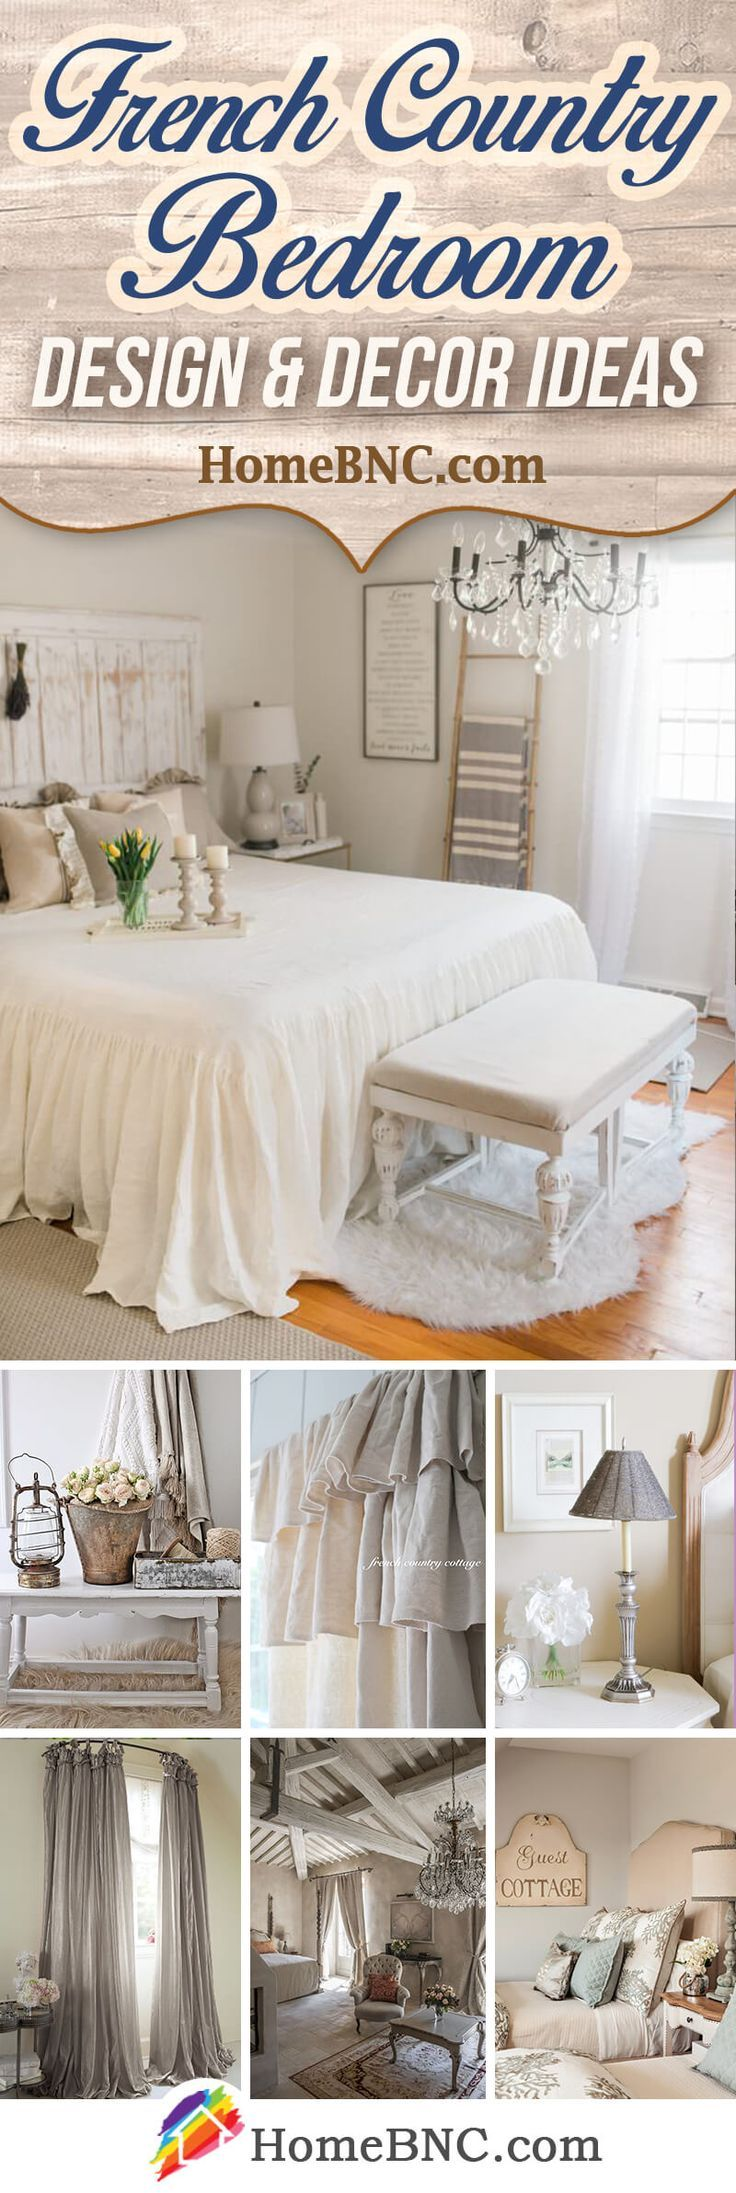 30 French Country Bedroom Design and Decor Ideas for a